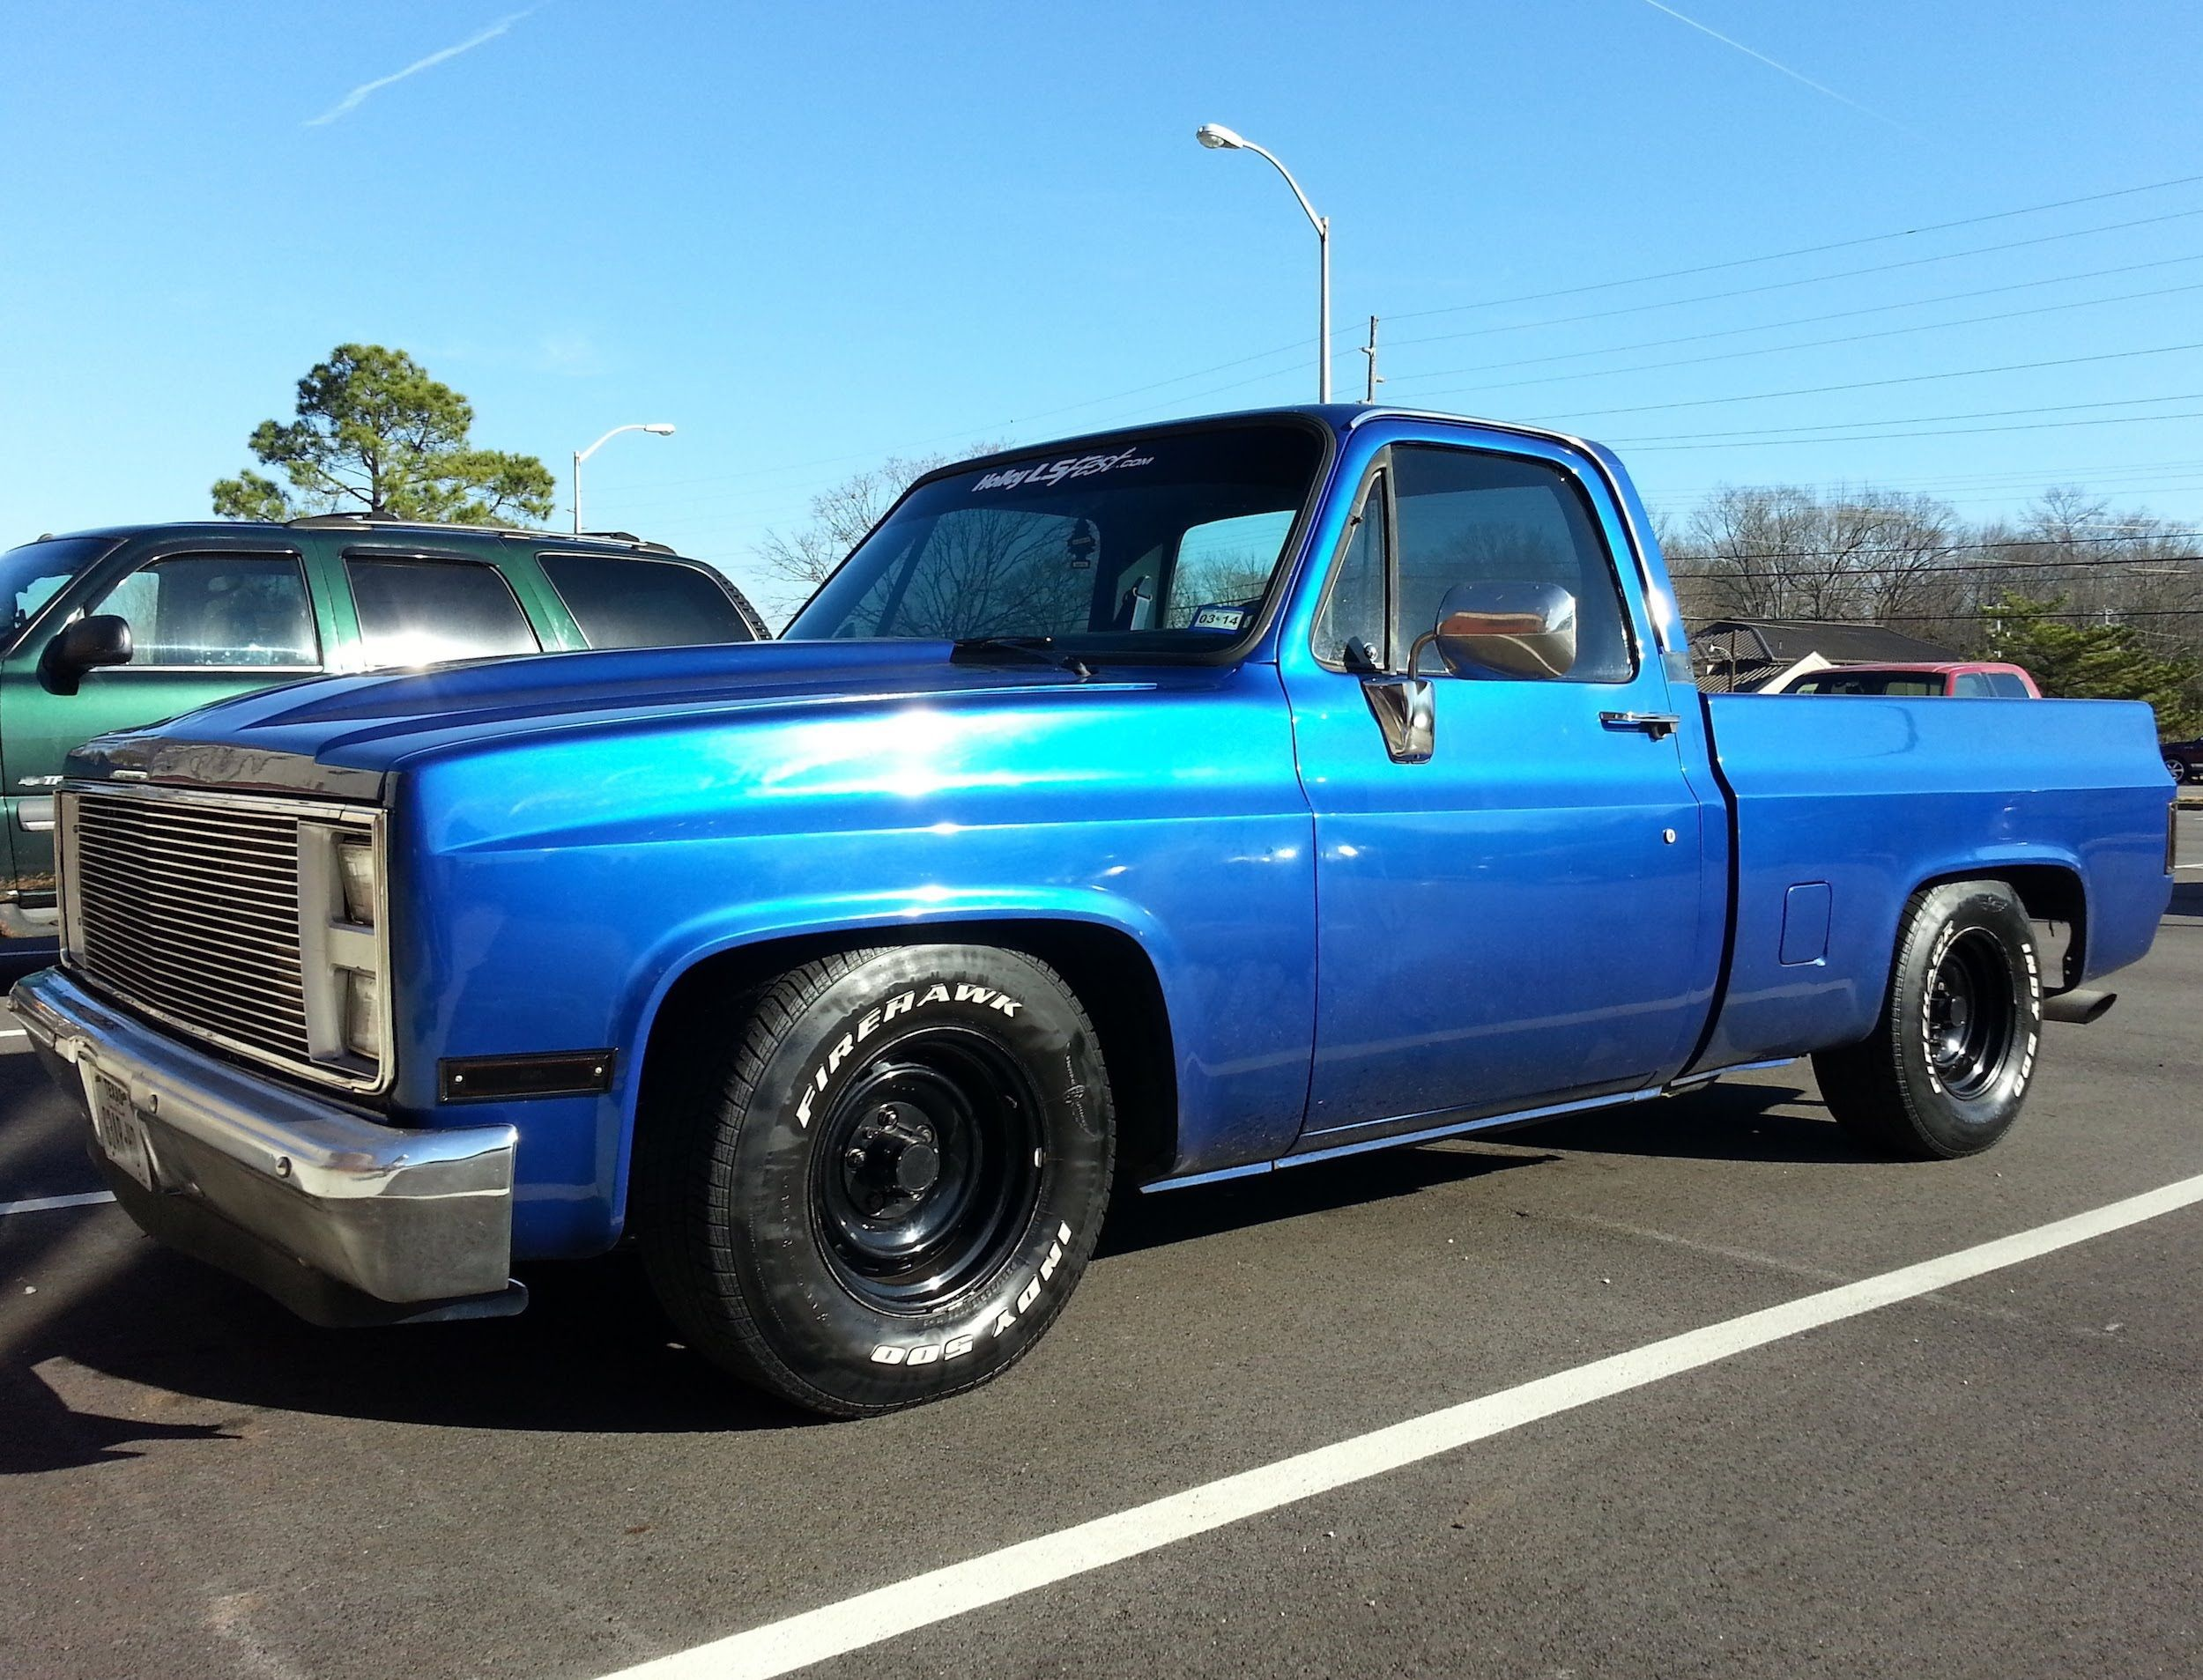 Pin By Jim Smith On 73-87 C10